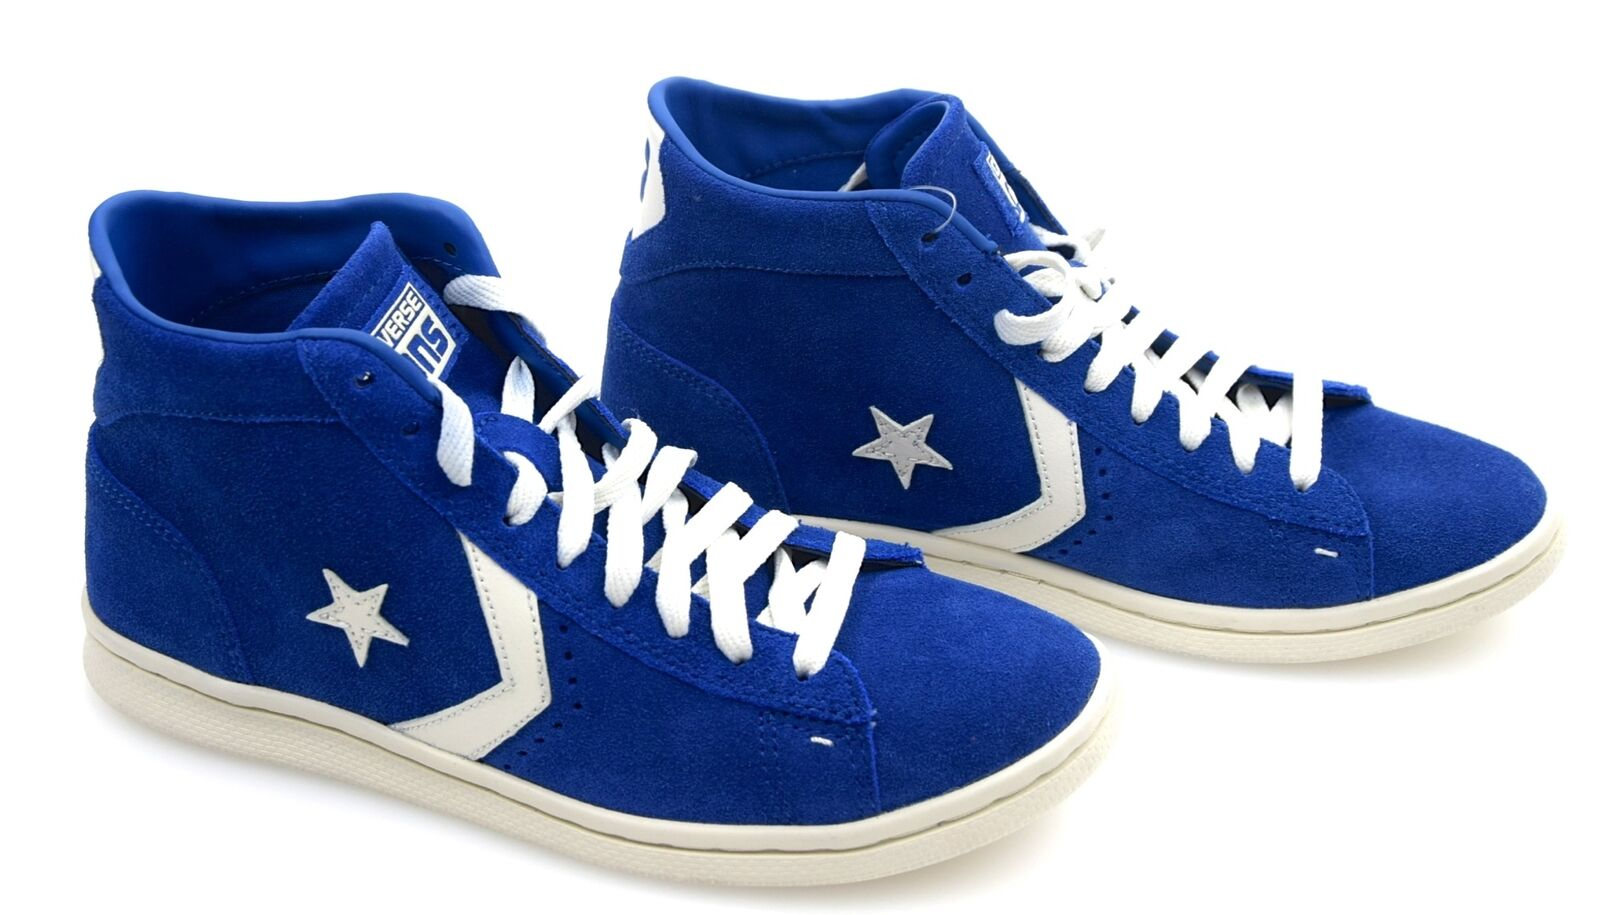 CONVERSE MAN WOMAN UNISEX SNEAKER SHOES CASUAL FREE TIME SUEDE CODE 131106C